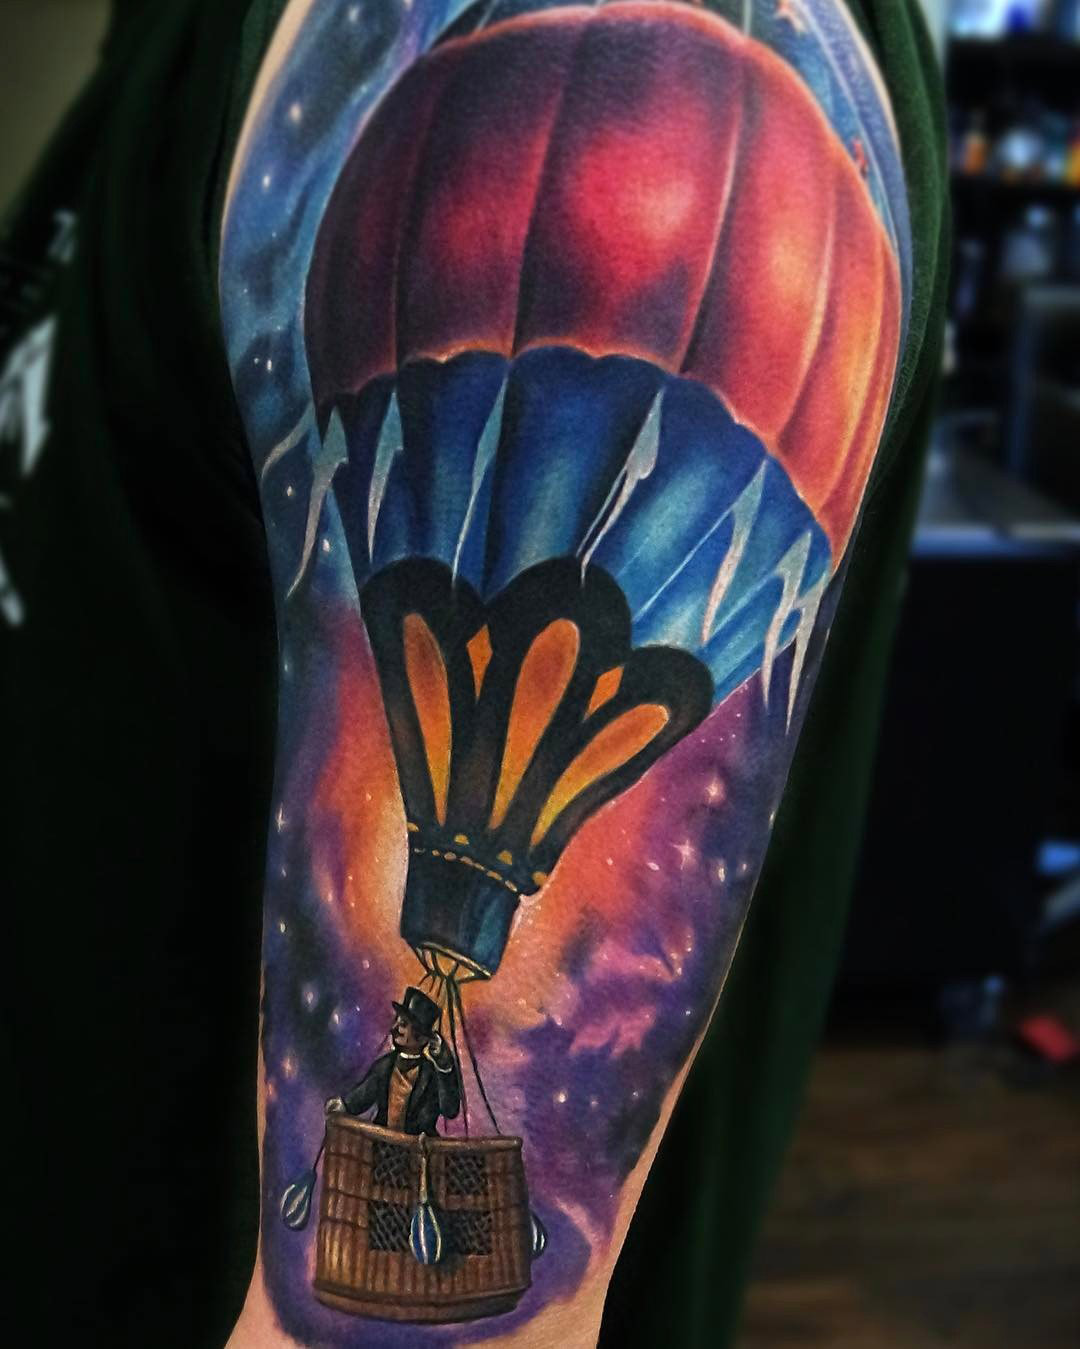 Hot Air Balloon in Space